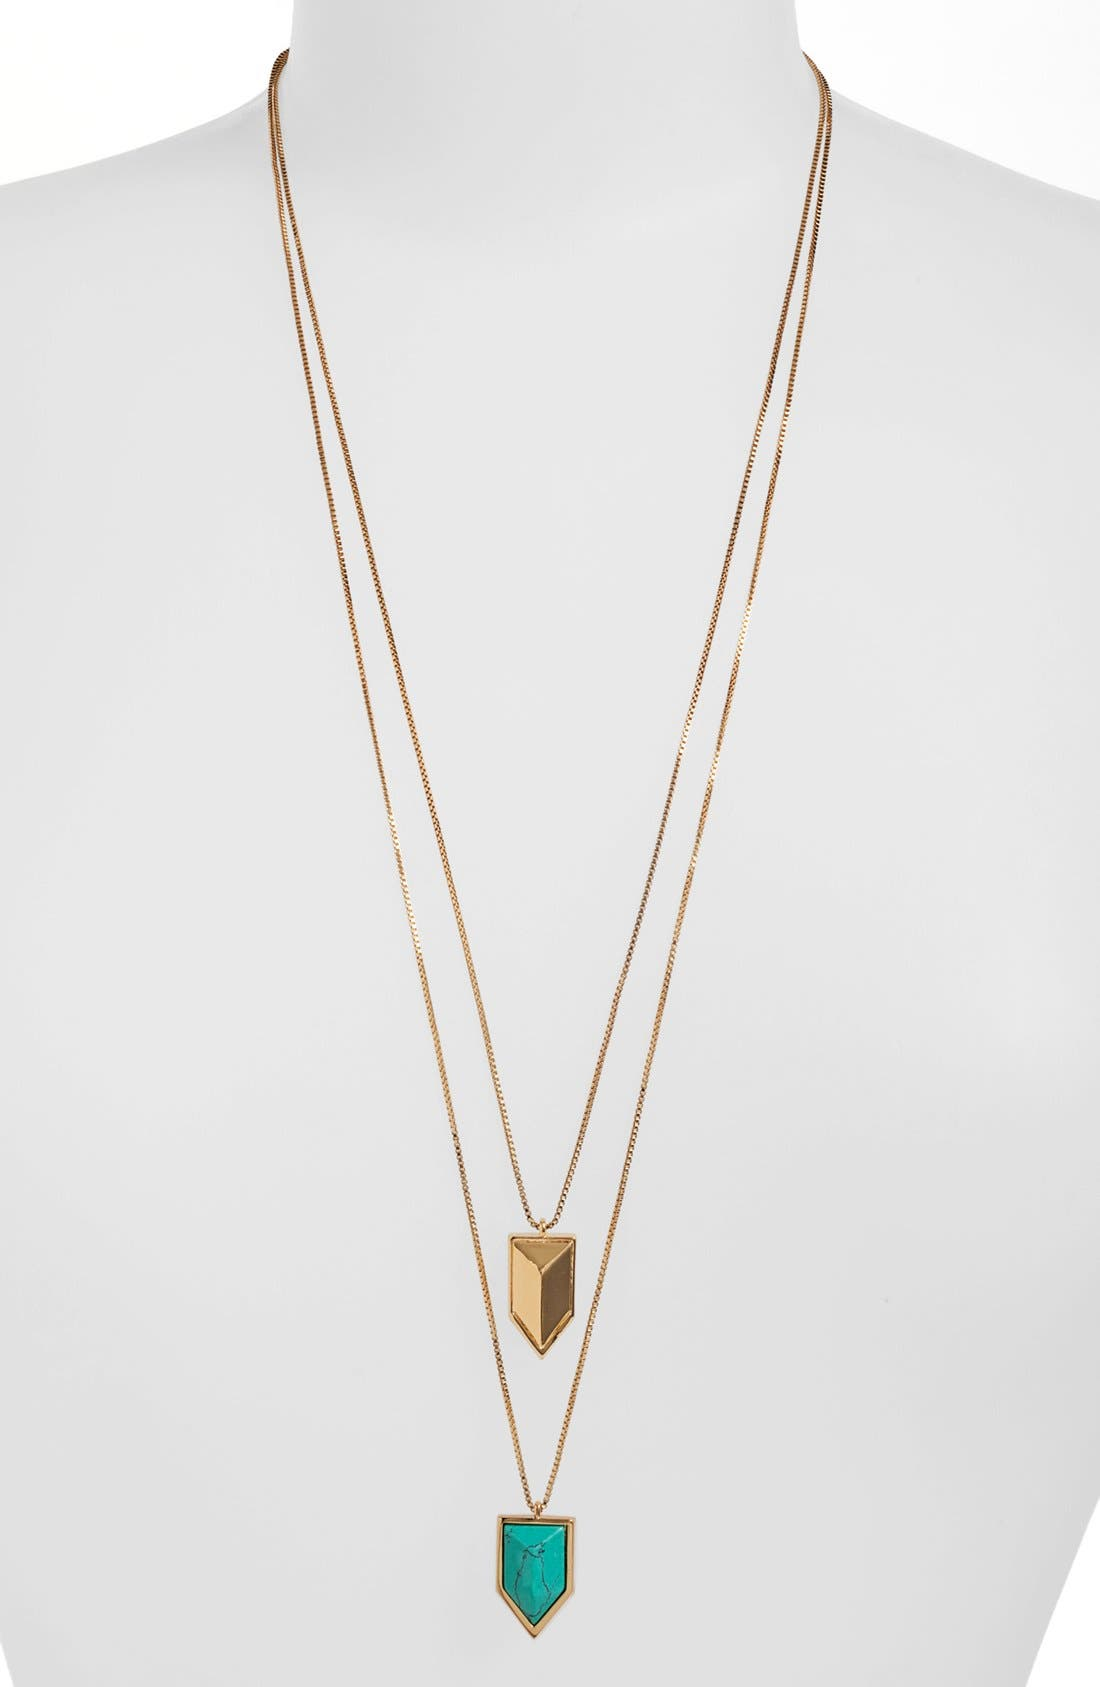 Main Image - Vince Camuto 'Clearview' Double Pendant Necklace (Nordstrom Exclusive)